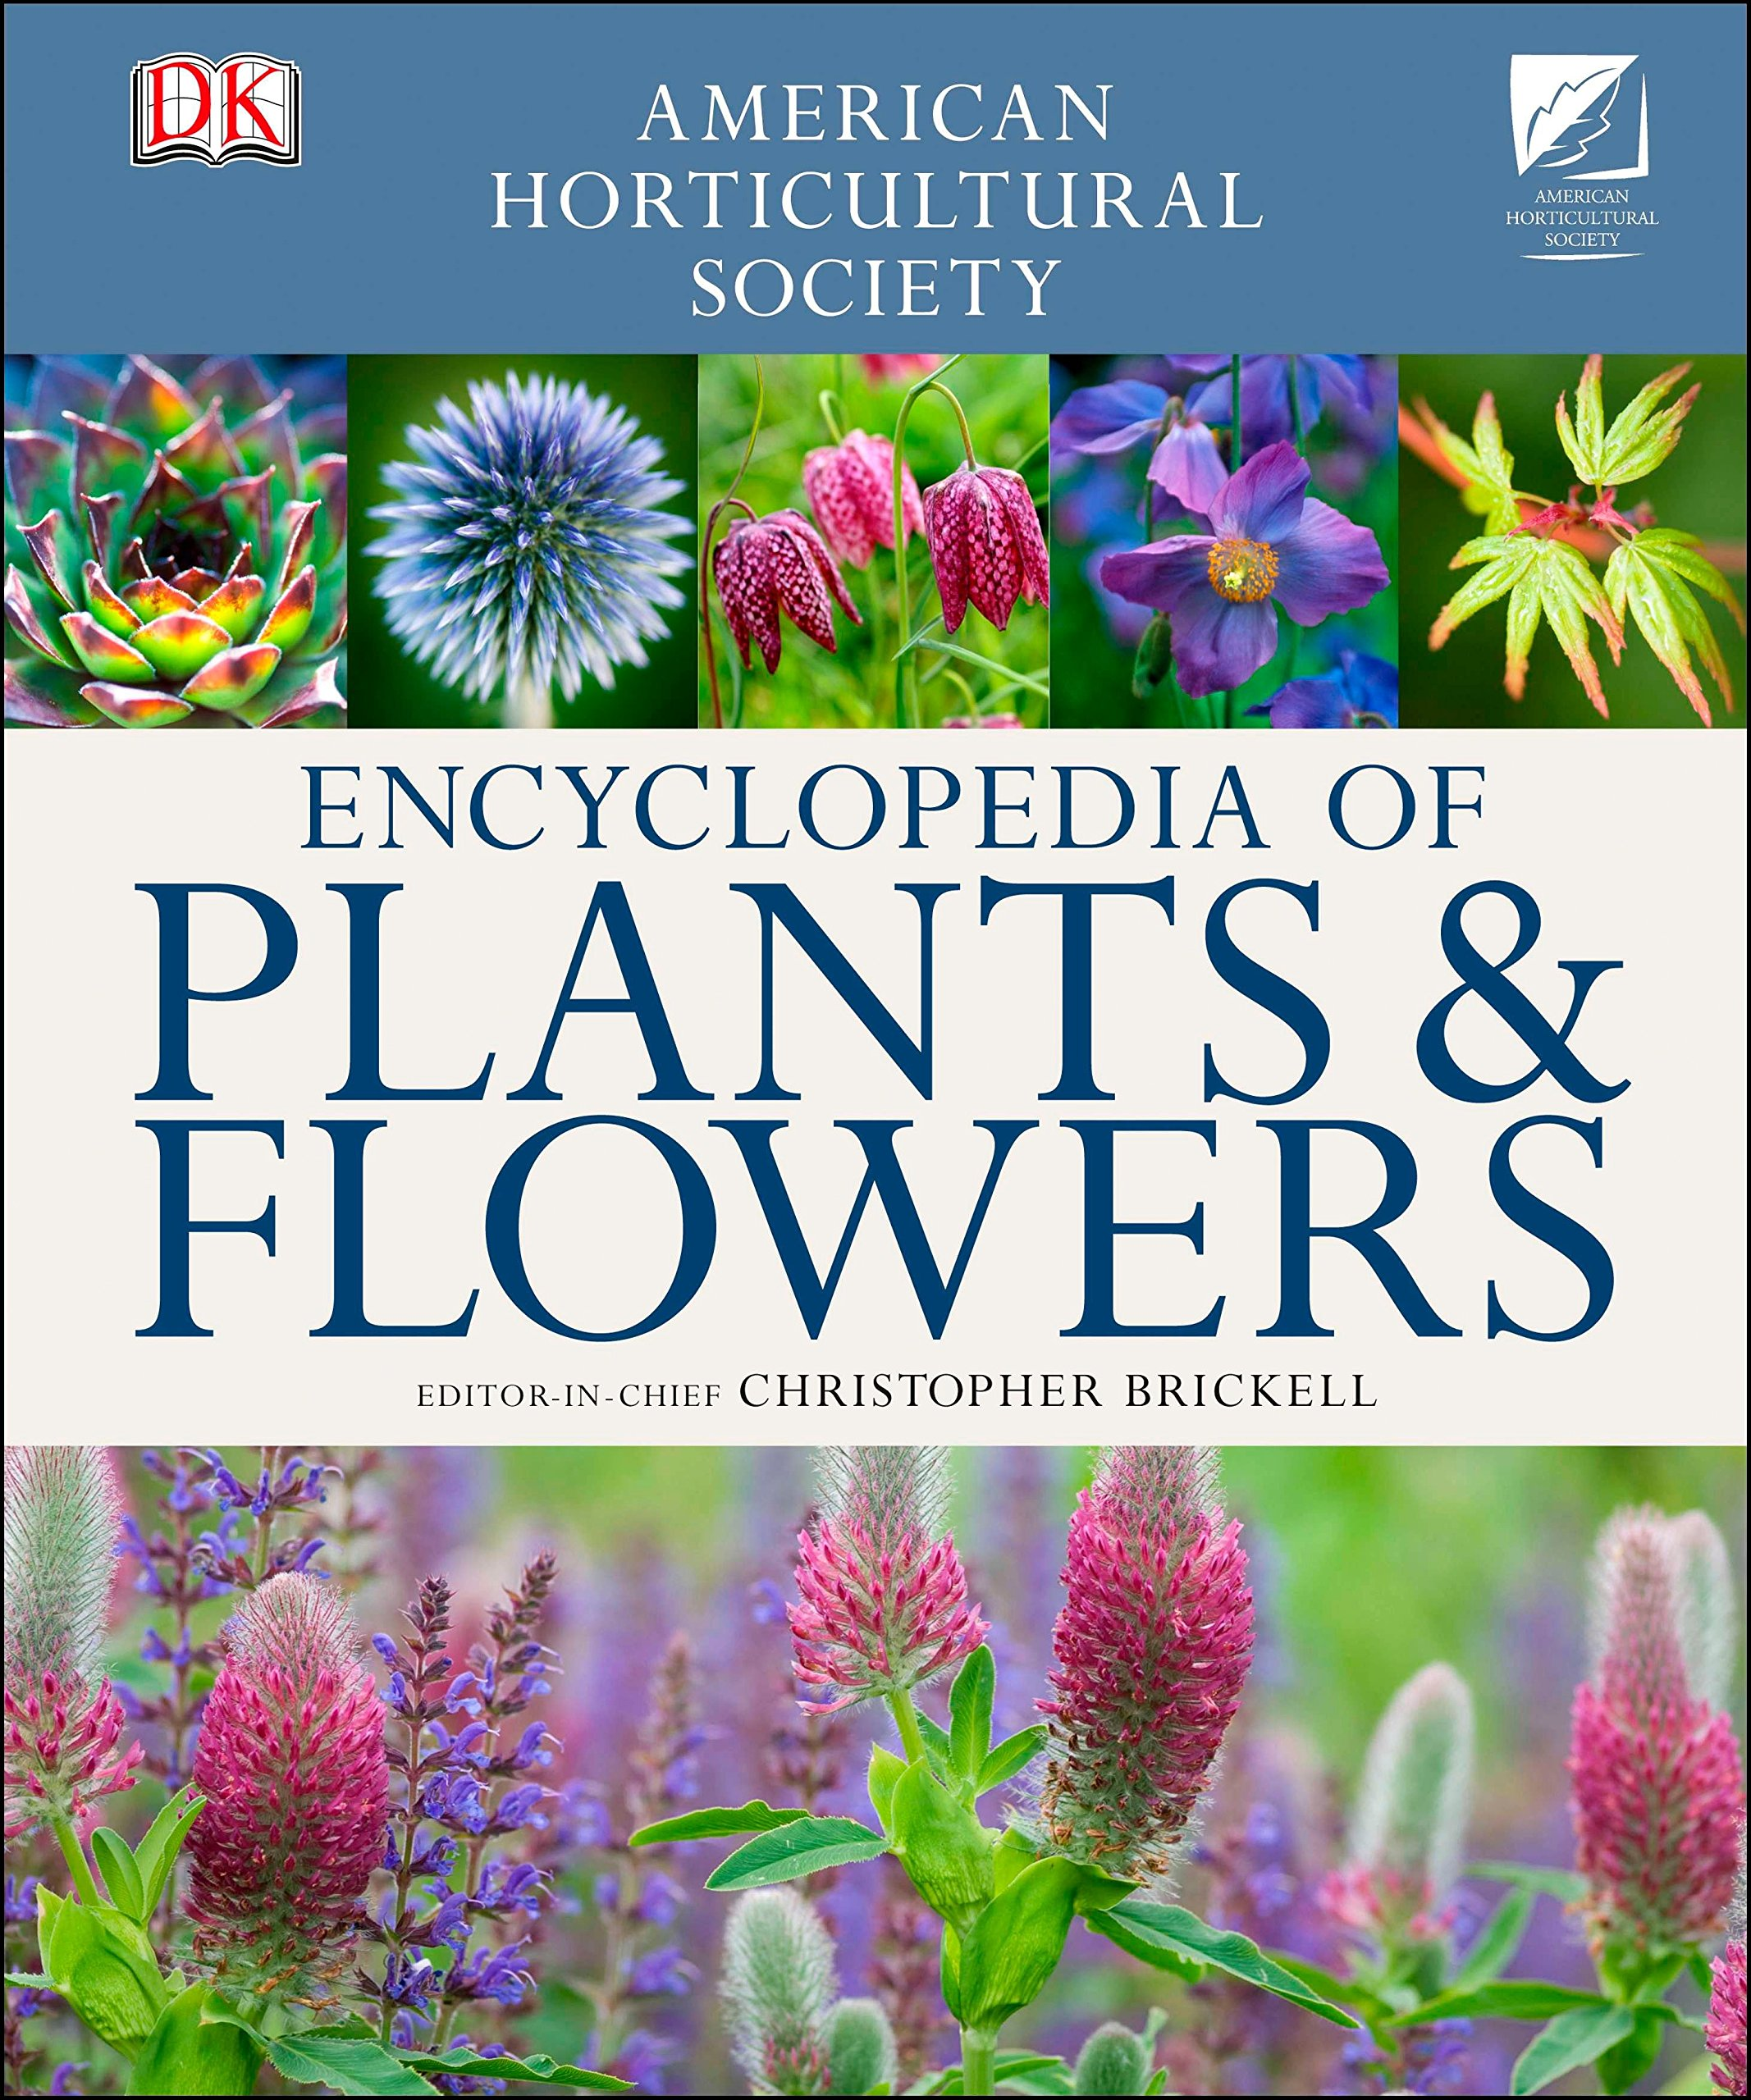 American Horticultural Society Encyclopedia of Plants and Flowers (American Horticultural Society) by Brand: DK ADULT